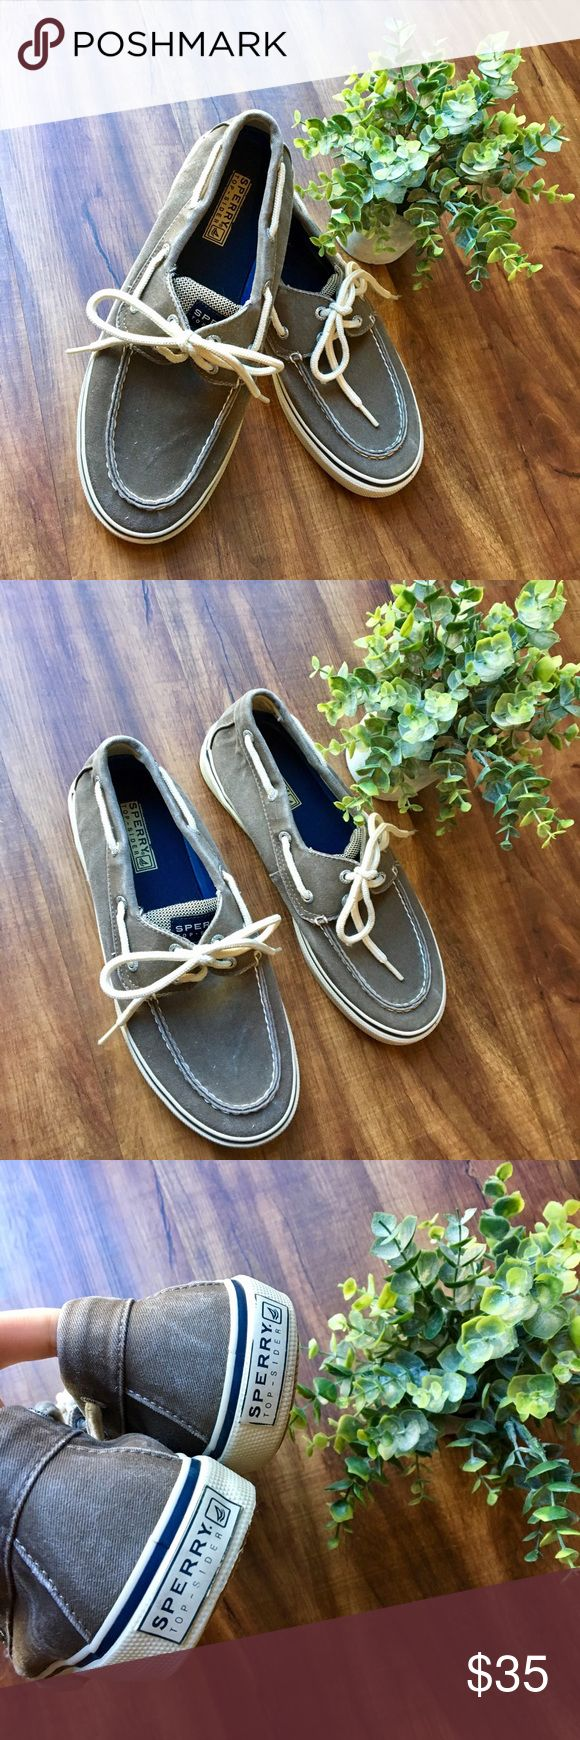 Men's sperry boat shoes Men's Sperry topside wahoo 2-eye sneaker. Perfect condition! Size 8.5 they are a warm gray color accurate in photos  20% off bundles! I love offers 😊 Sperry Top-Sider Shoes Boat Shoes